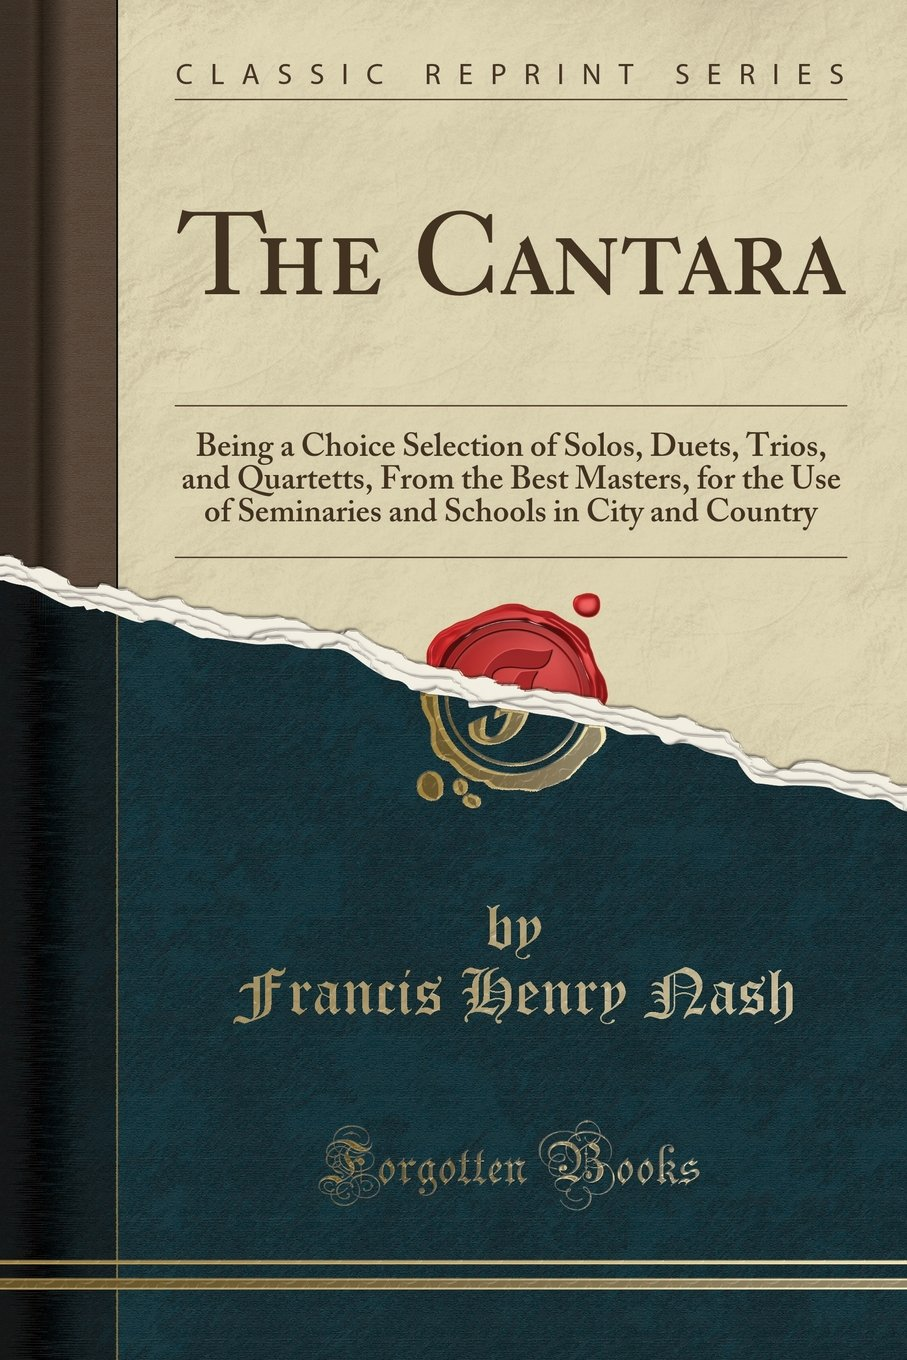 Download The Cantara: Being a Choice Selection of Solos, Duets, Trios, and Quartetts, From the Best Masters, for the Use of Seminaries and Schools in City and Country (Classic Reprint) pdf epub